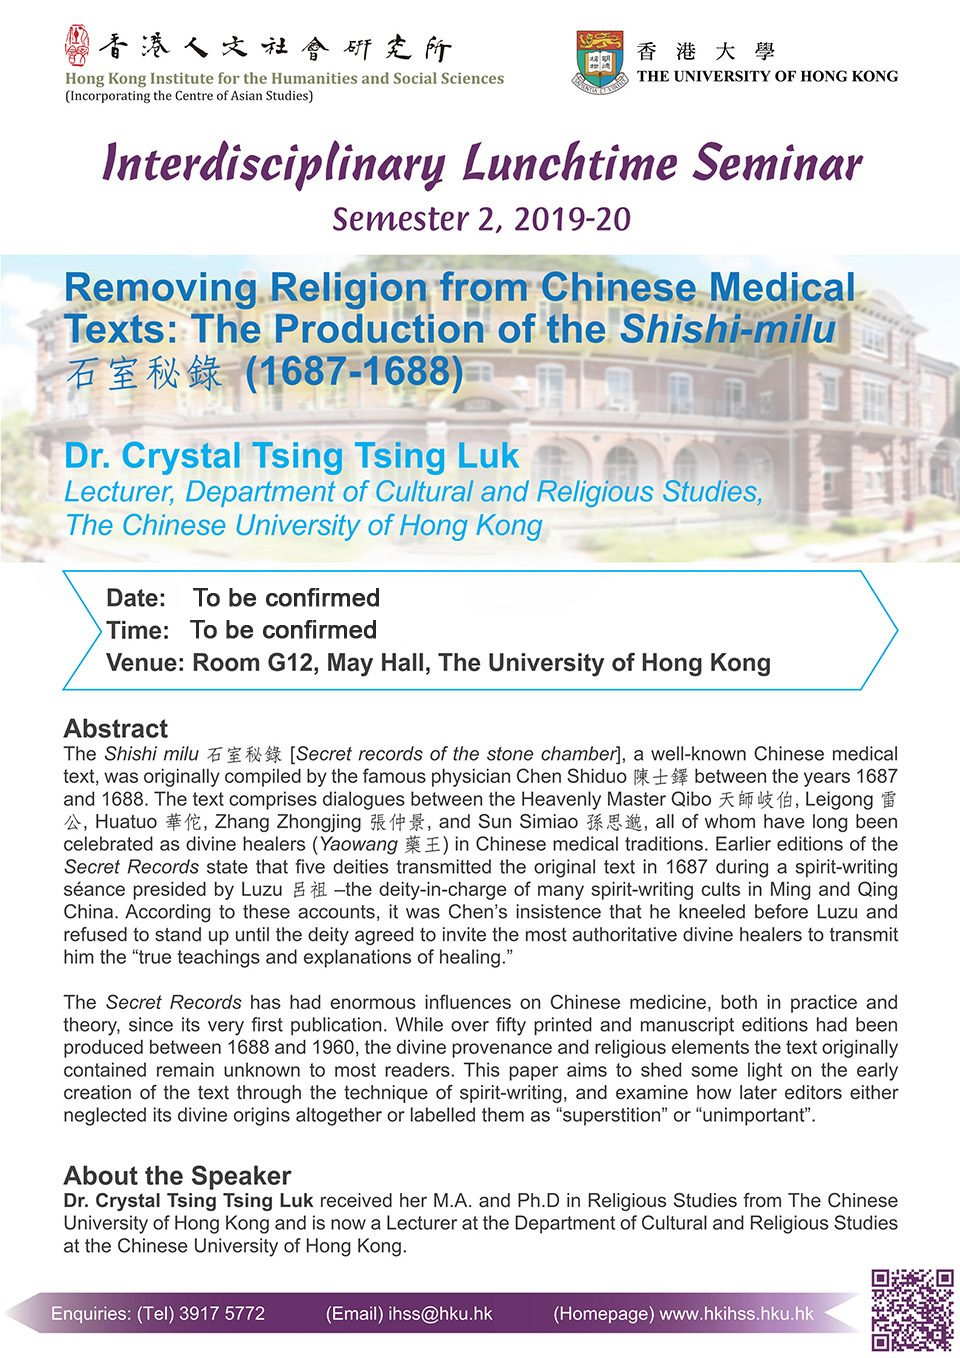 """Interdisciplinary Lunchtime Seminar on """"Removing Religion from Chinese Medical Texts: The Production of the Shishi-milu 石室秘錄"""" (1687 – 1688)"""" by Dr. Crystal Tsing Tsing Luk"""